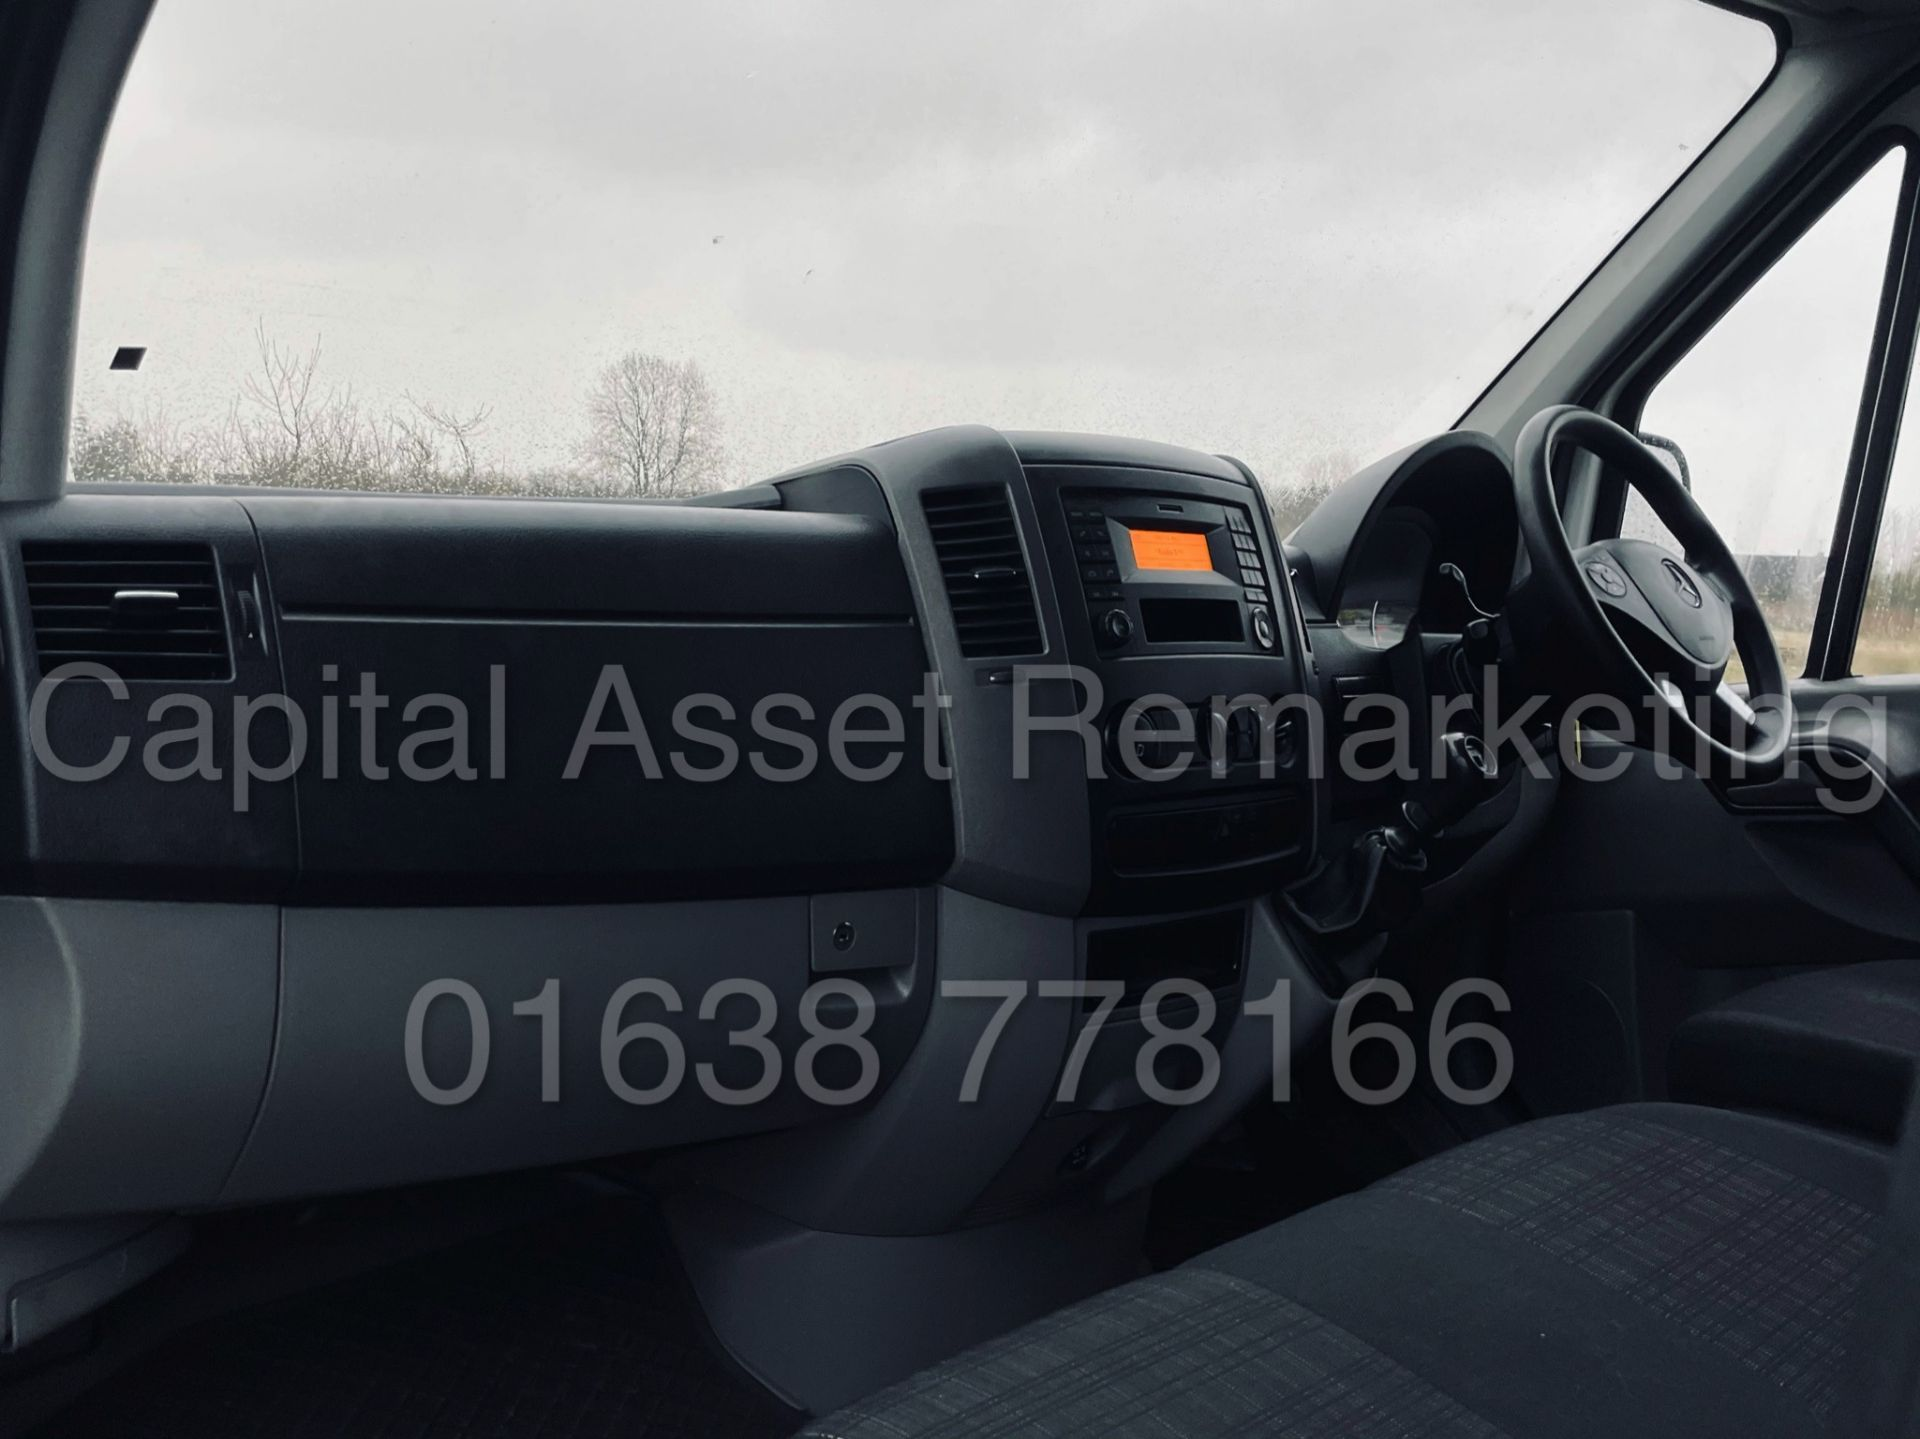 (On Sale) MERCEDES-BENZ SPRINTER 314 CDI *LWB HI-ROOF* (67 REG - EURO 6) '140 BHP-6 SPEED' (1 OWNER) - Image 19 of 37